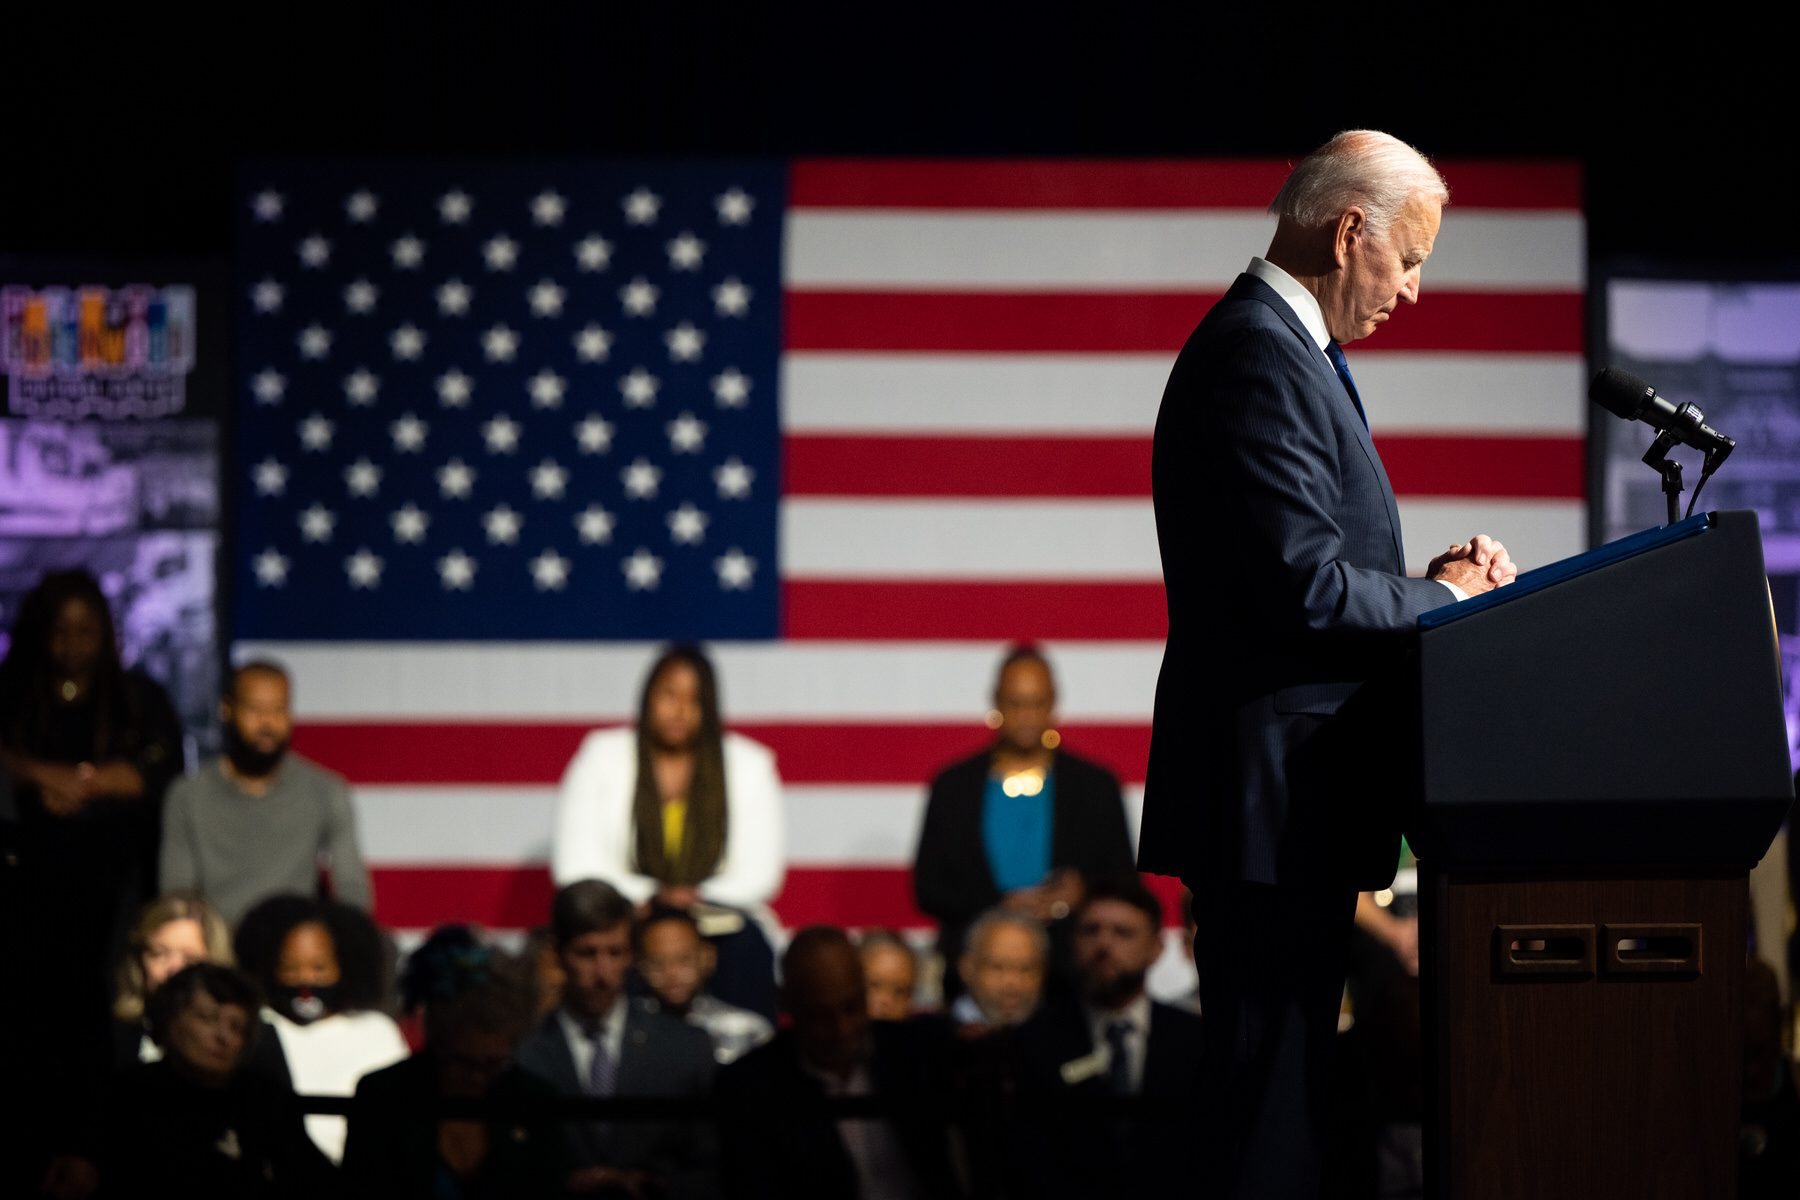 U.S. President Joe Biden takes a moment of silence during commemorations of the 100th anniversary of the Tulsa Race Massacre.